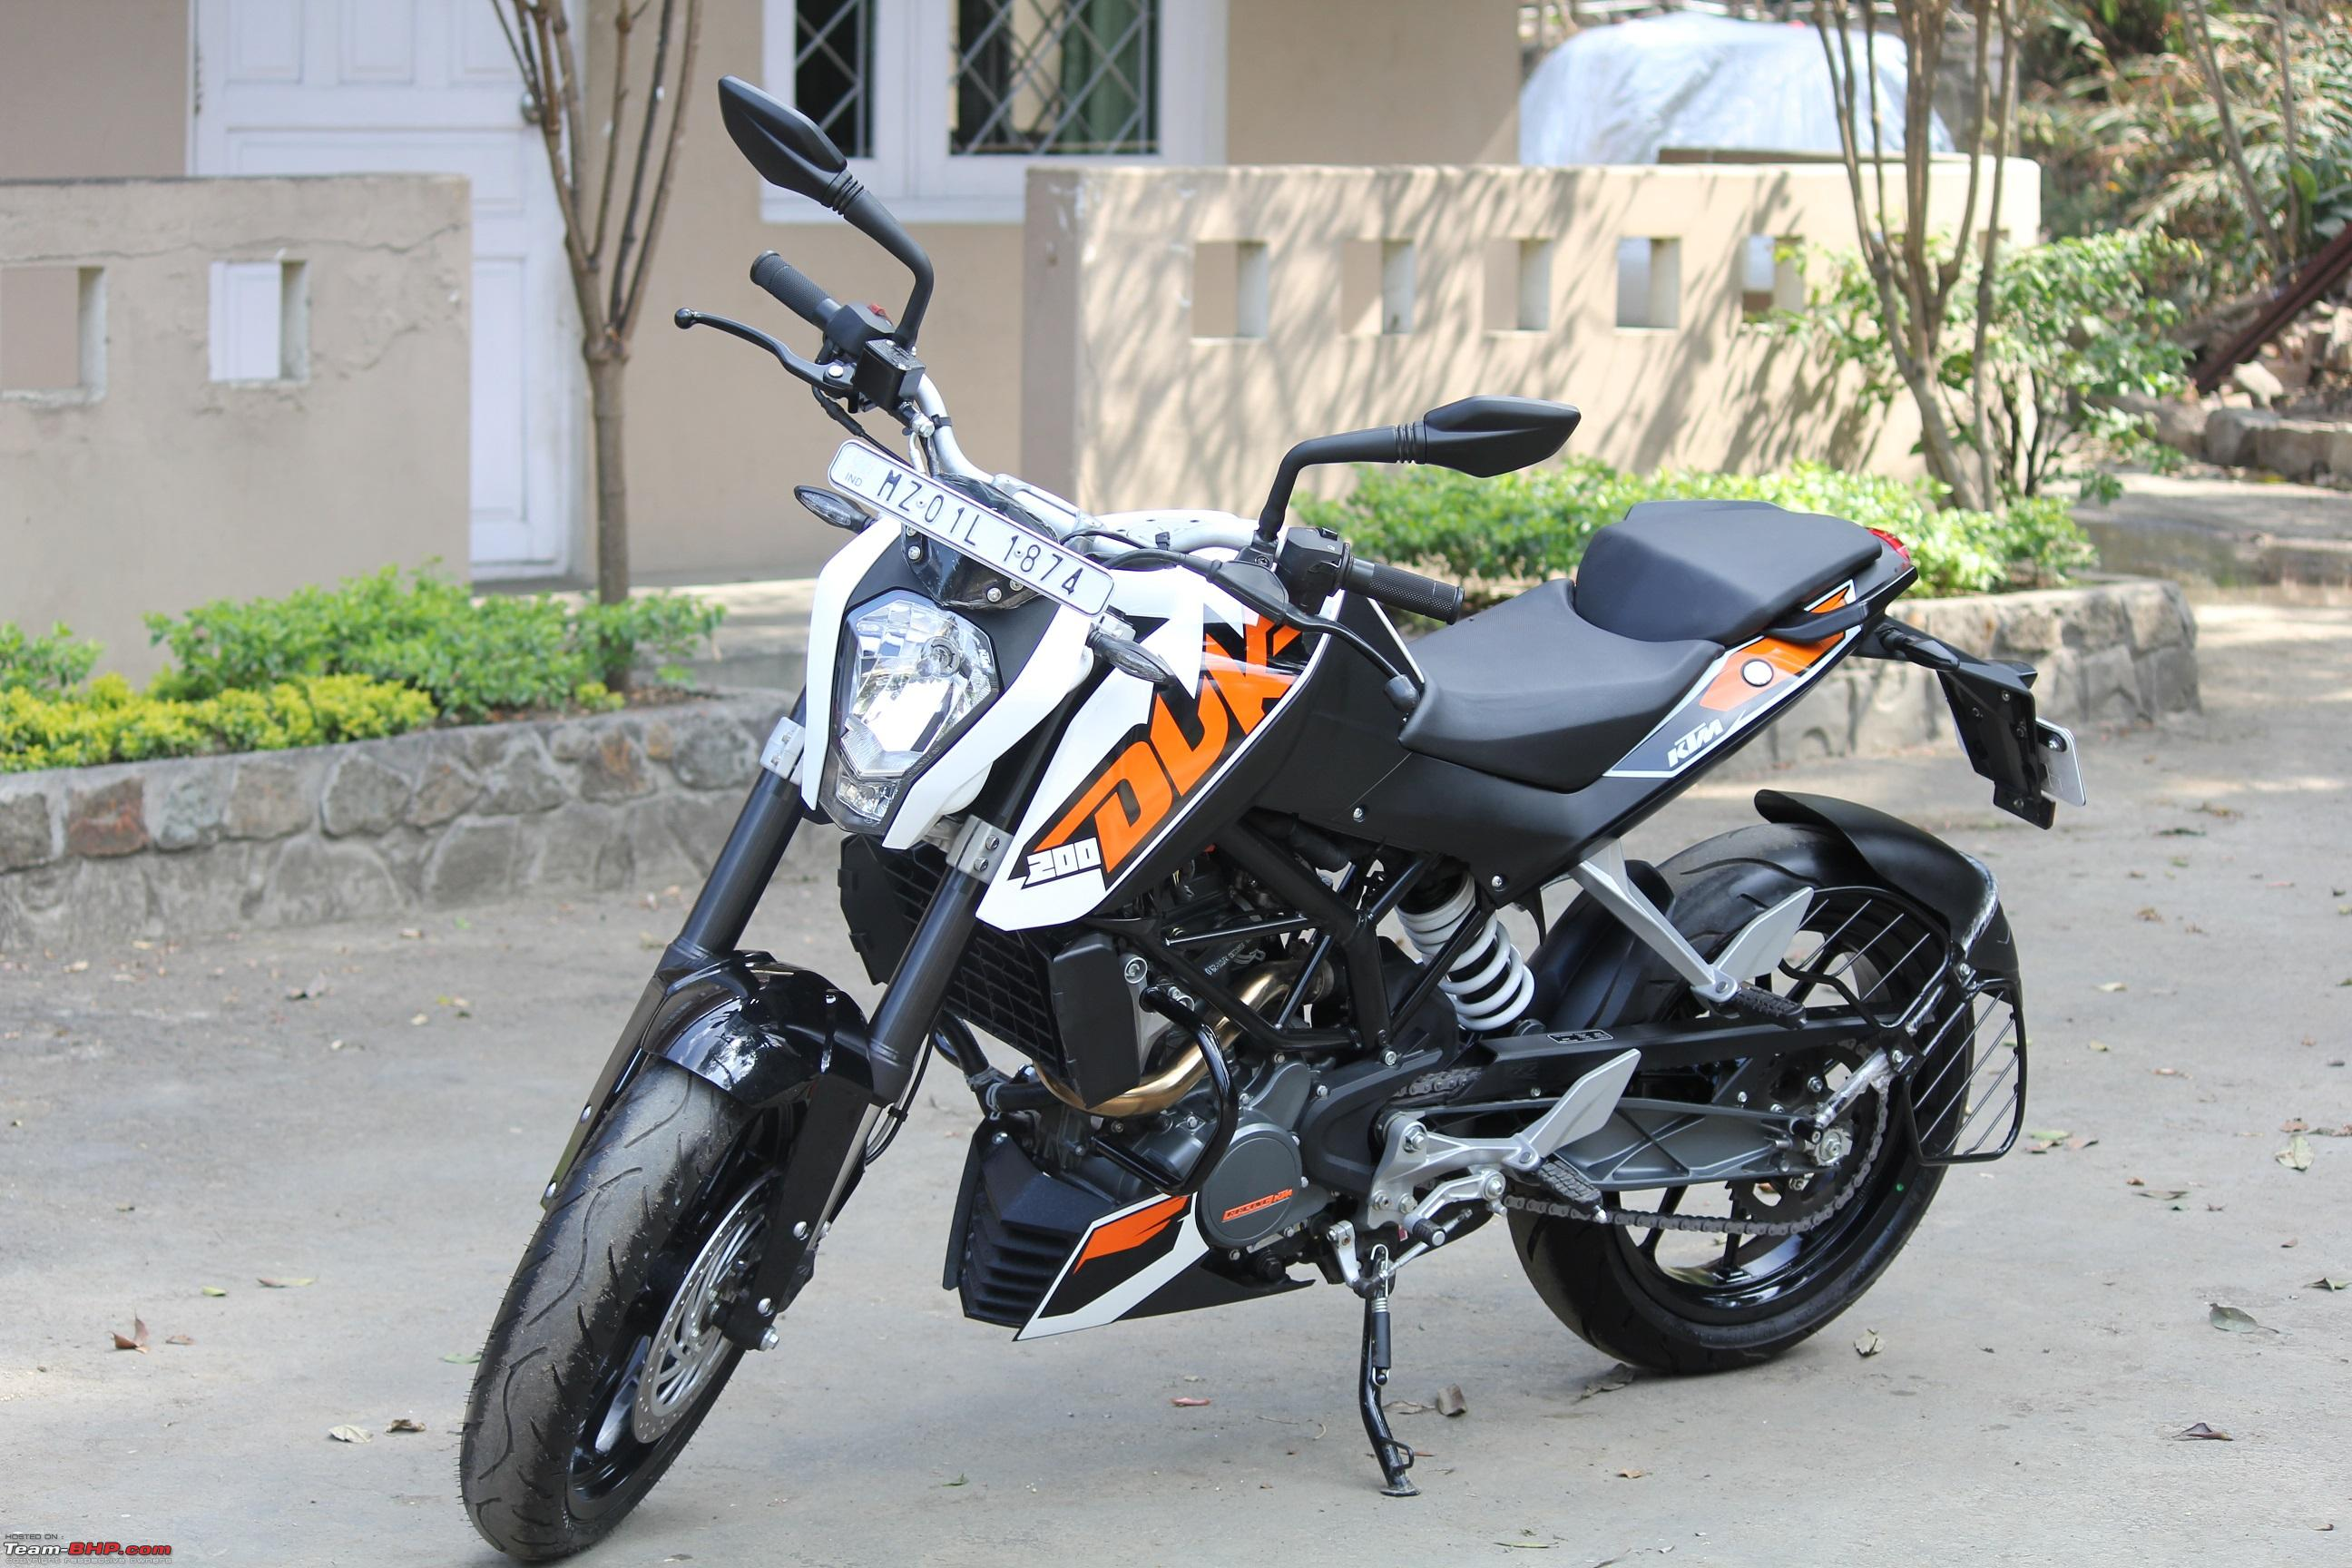 Review: KTM Duke 200 - Team-BHP